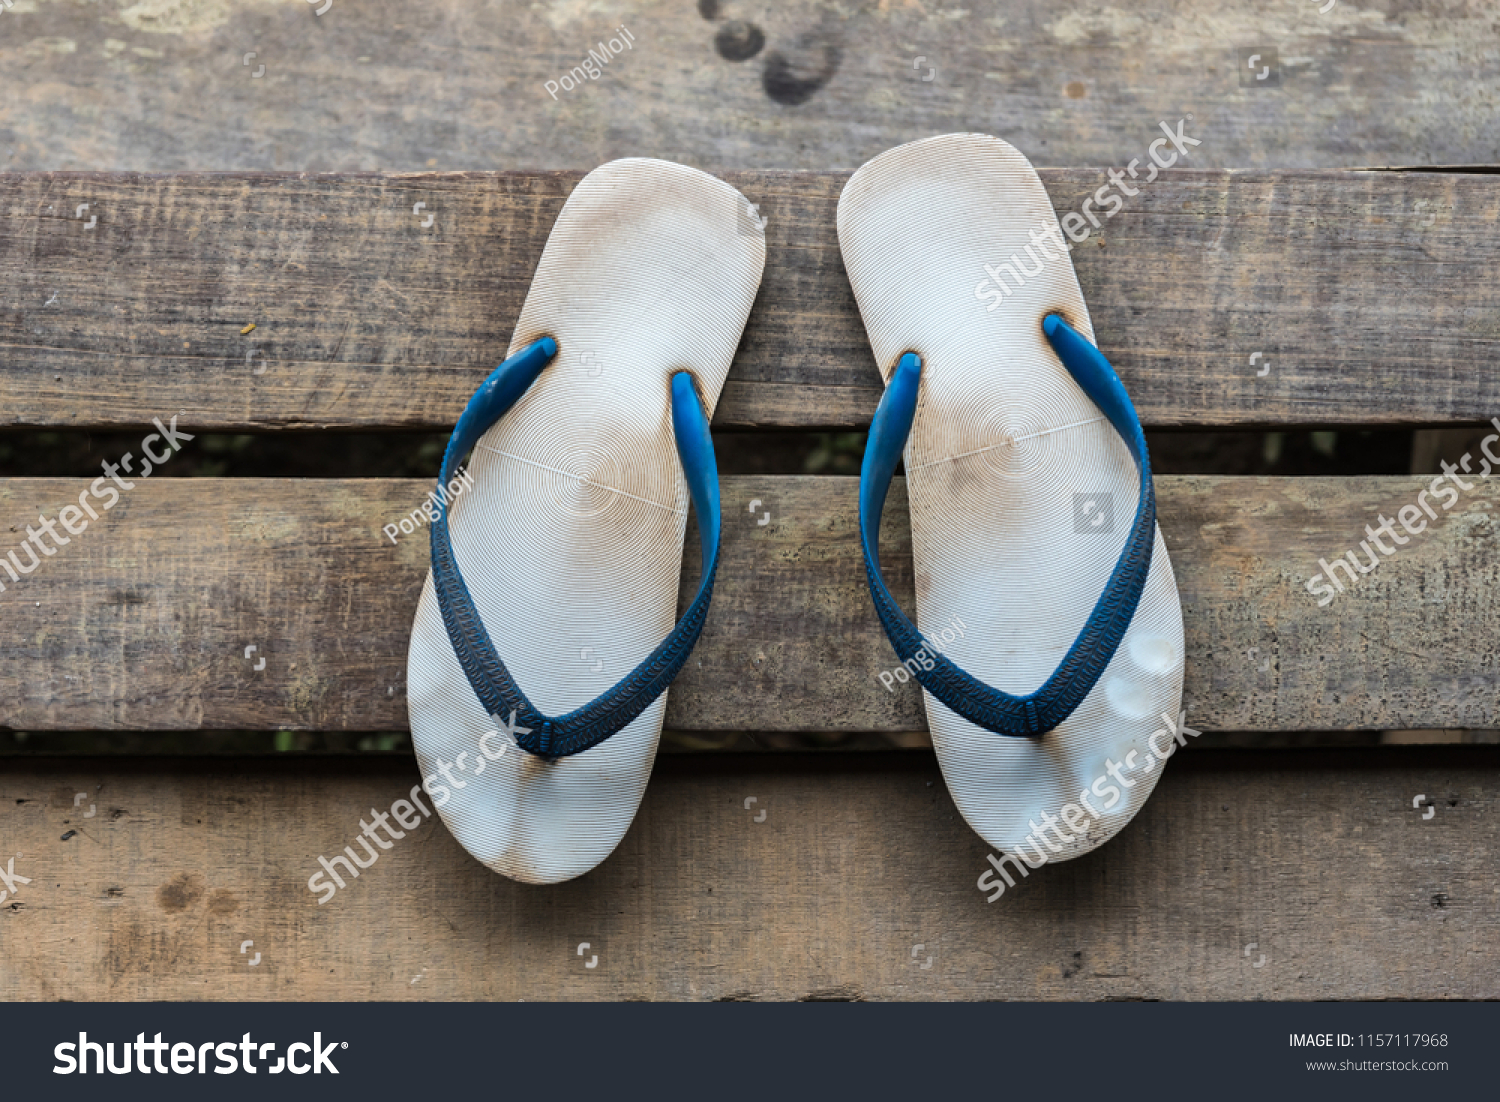 e3b2e4226 Vintage sandal or thongs or flip-flop blue color is a footwear on wooden  staircase